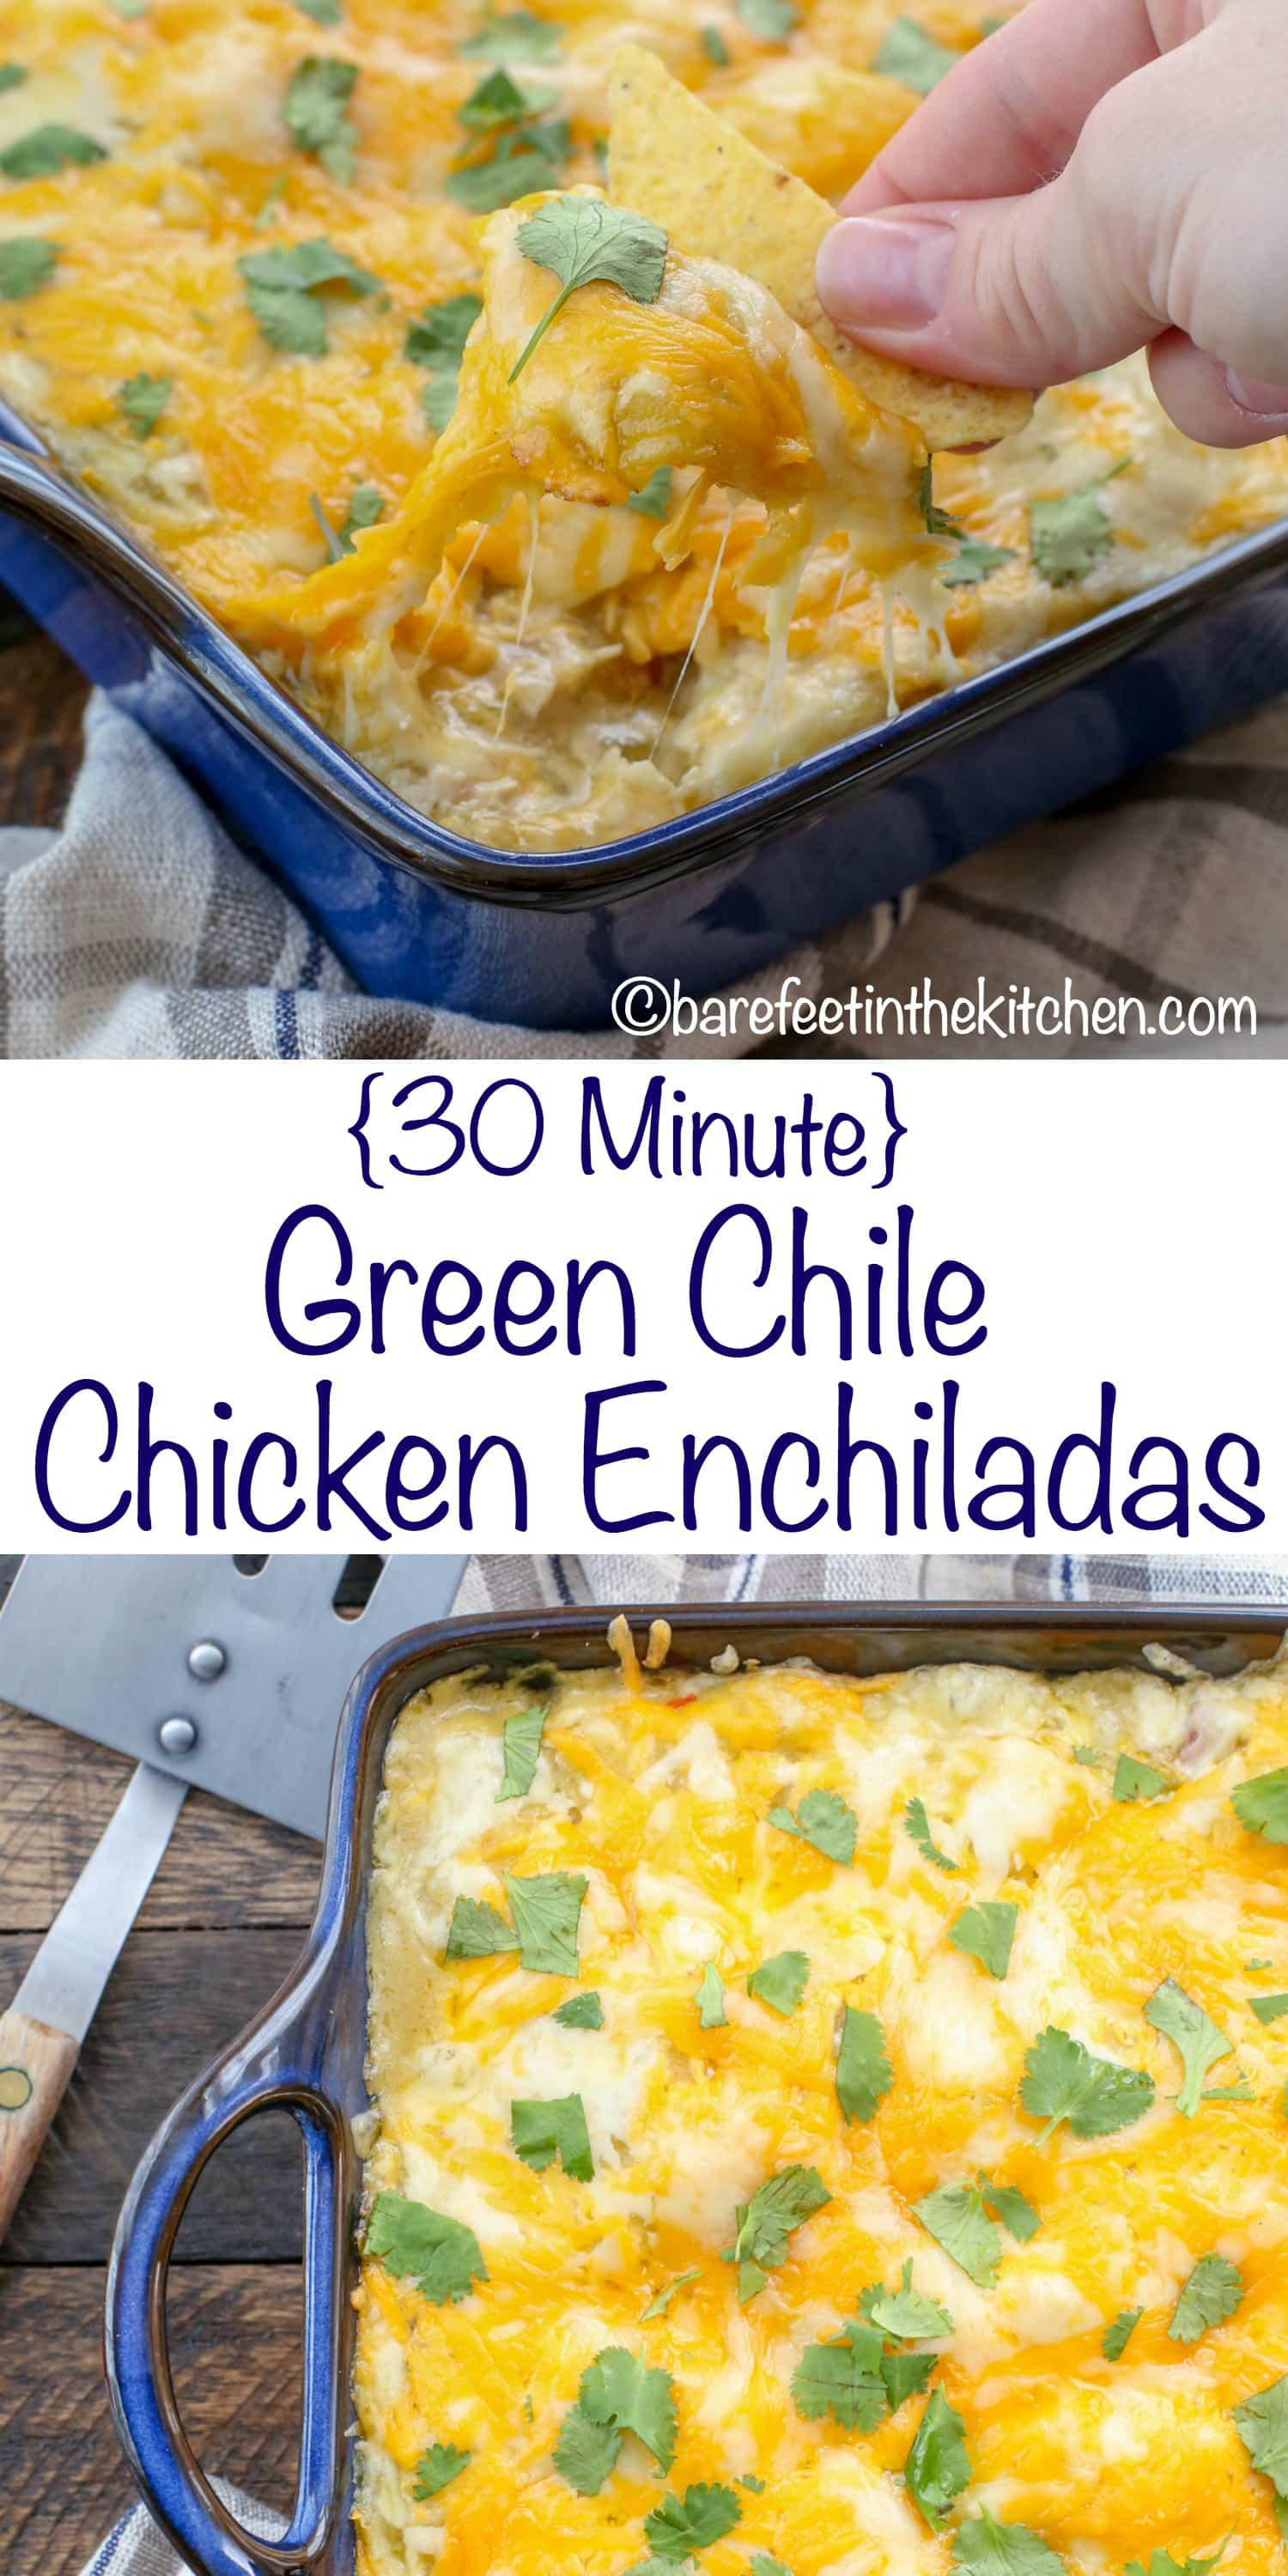 30 Minute Green Chile Chicken Enchiladas ...